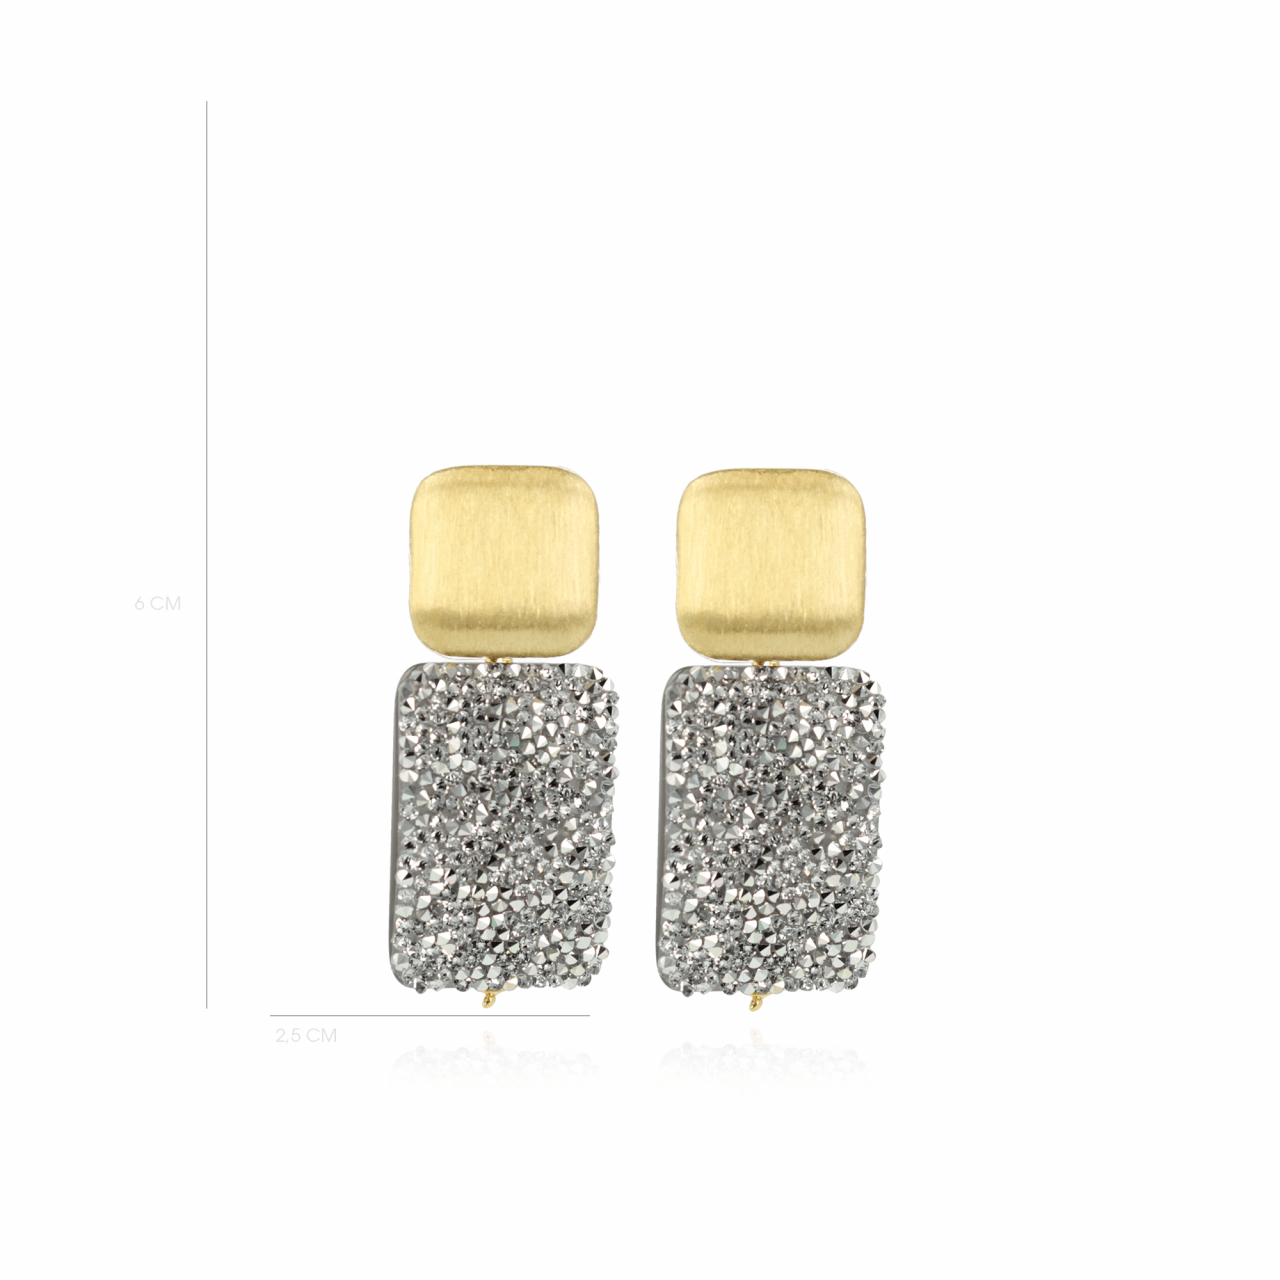 Tess swarovski rectangle m Silver earrings